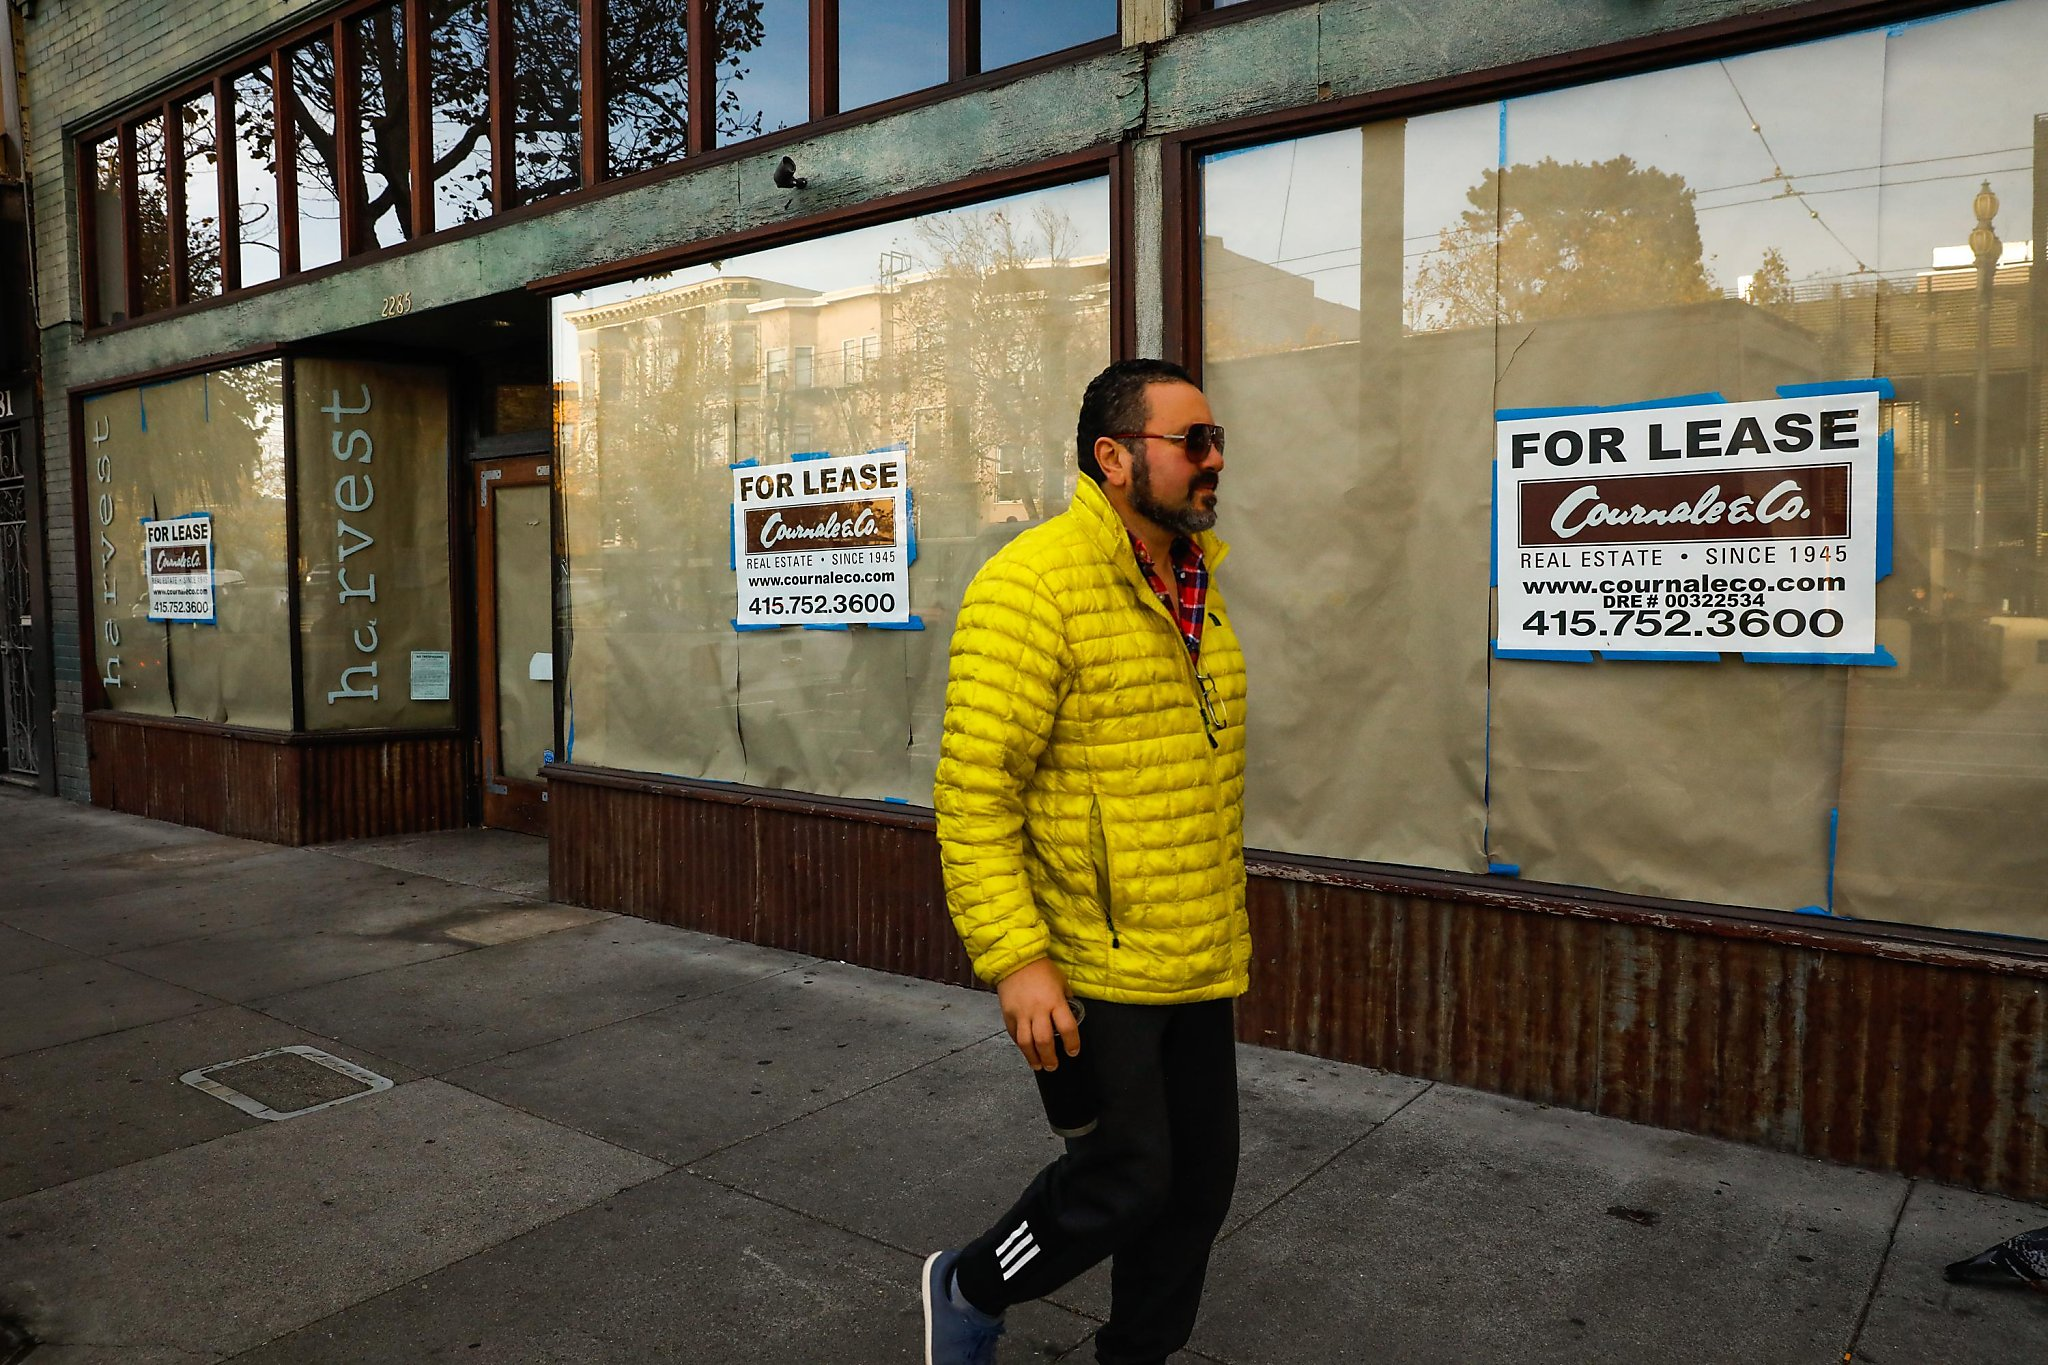 sfchronicle.com - Roland Li - With SF's retail storefronts empty, mayor pushes for more flexibility